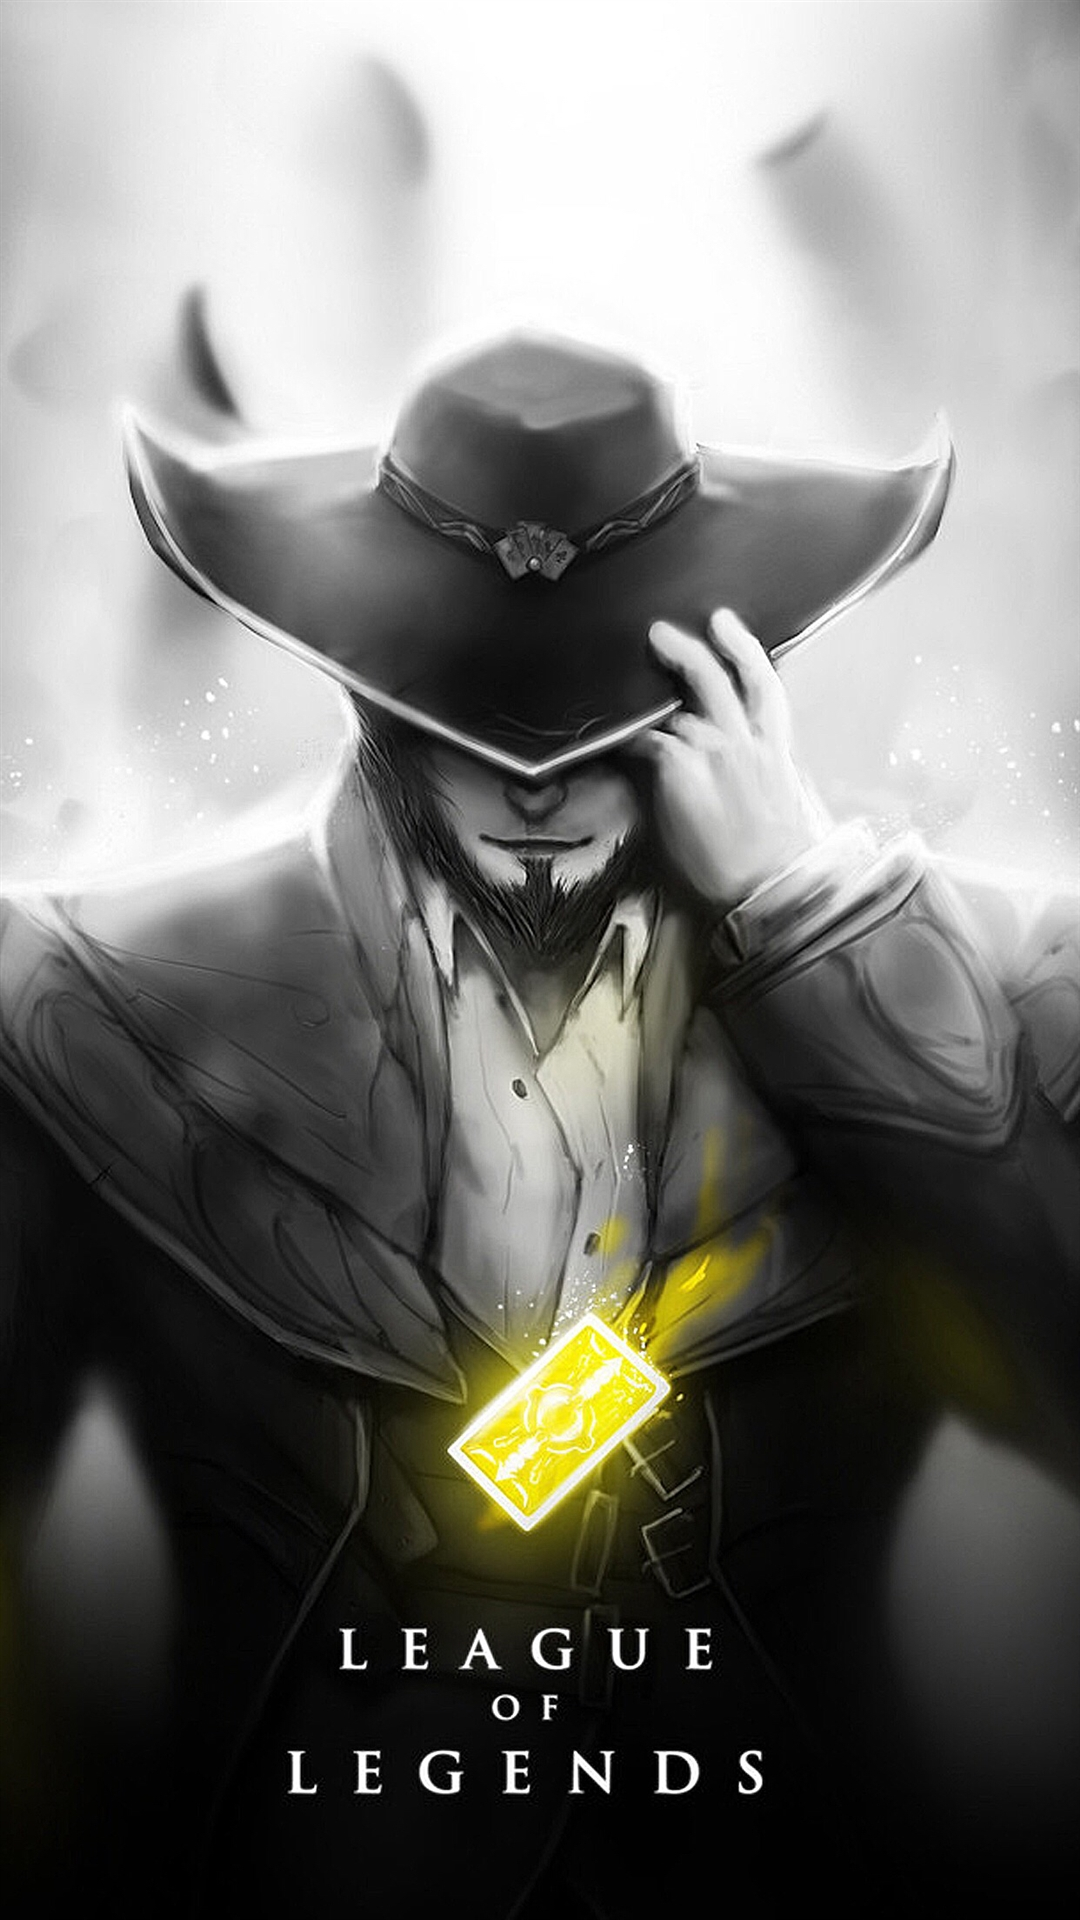 League-Of-Legends-Poster-iPhone-wallpaper-wpc9007034